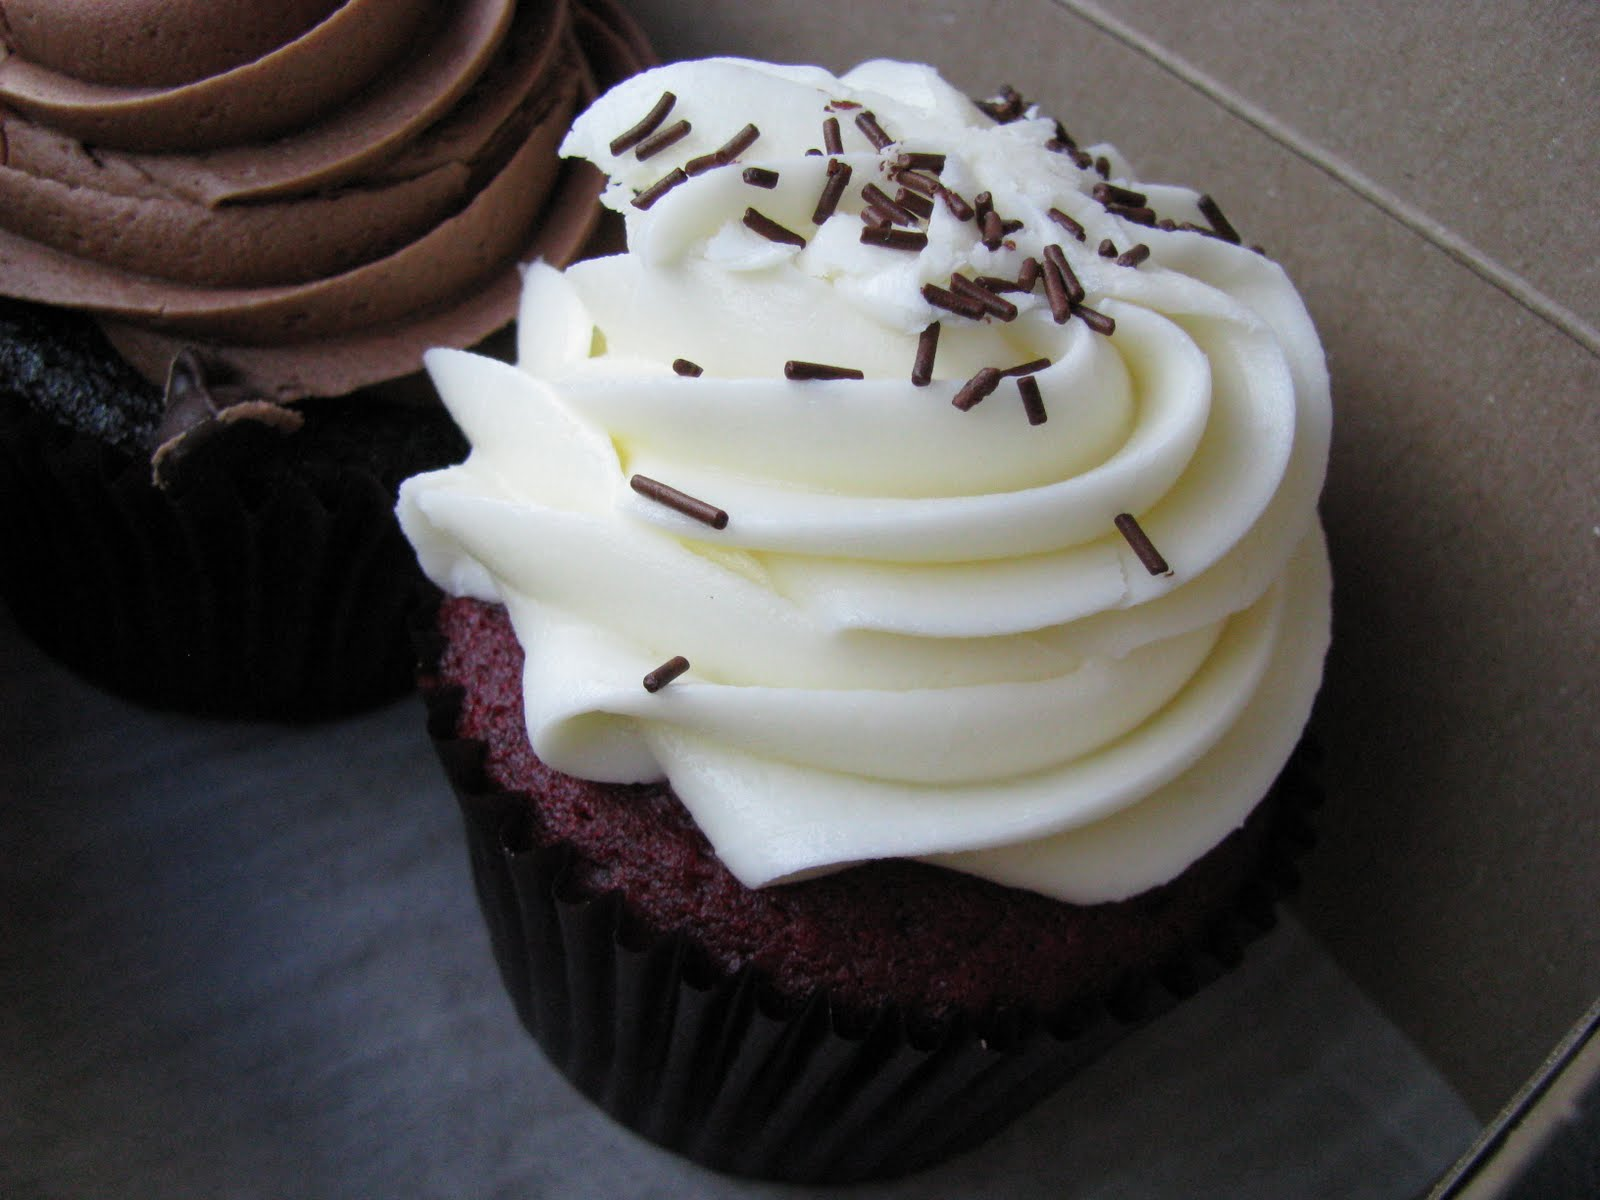 ... Food: Chiffono's Bakery and Cafe - My Favorite Red Velvet Cupcake